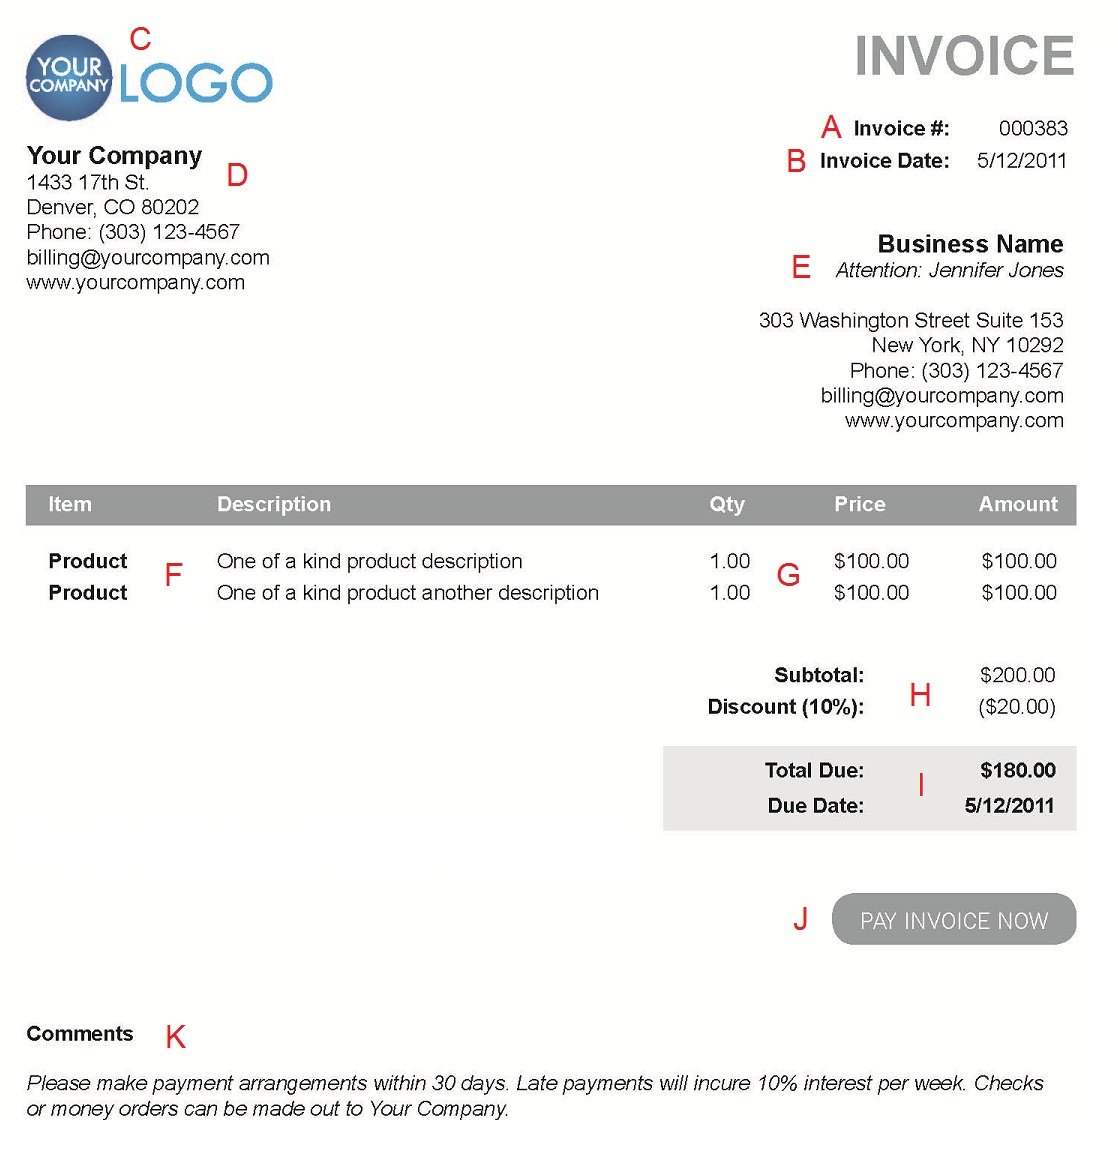 Imagerackus  Pleasing The  Different Sections Of An Electronic Payment Invoice With Outstanding A  With Astounding Receipt For Buying A Car Also Where To Find Tracking Number On Post Office Receipt In Addition Lodging Receipt Template And Scanner For Business Cards And Receipts As Well As Vat Receipts Additionally Returning Items Without A Receipt From Paysimplecom With Imagerackus  Outstanding The  Different Sections Of An Electronic Payment Invoice With Astounding A  And Pleasing Receipt For Buying A Car Also Where To Find Tracking Number On Post Office Receipt In Addition Lodging Receipt Template From Paysimplecom